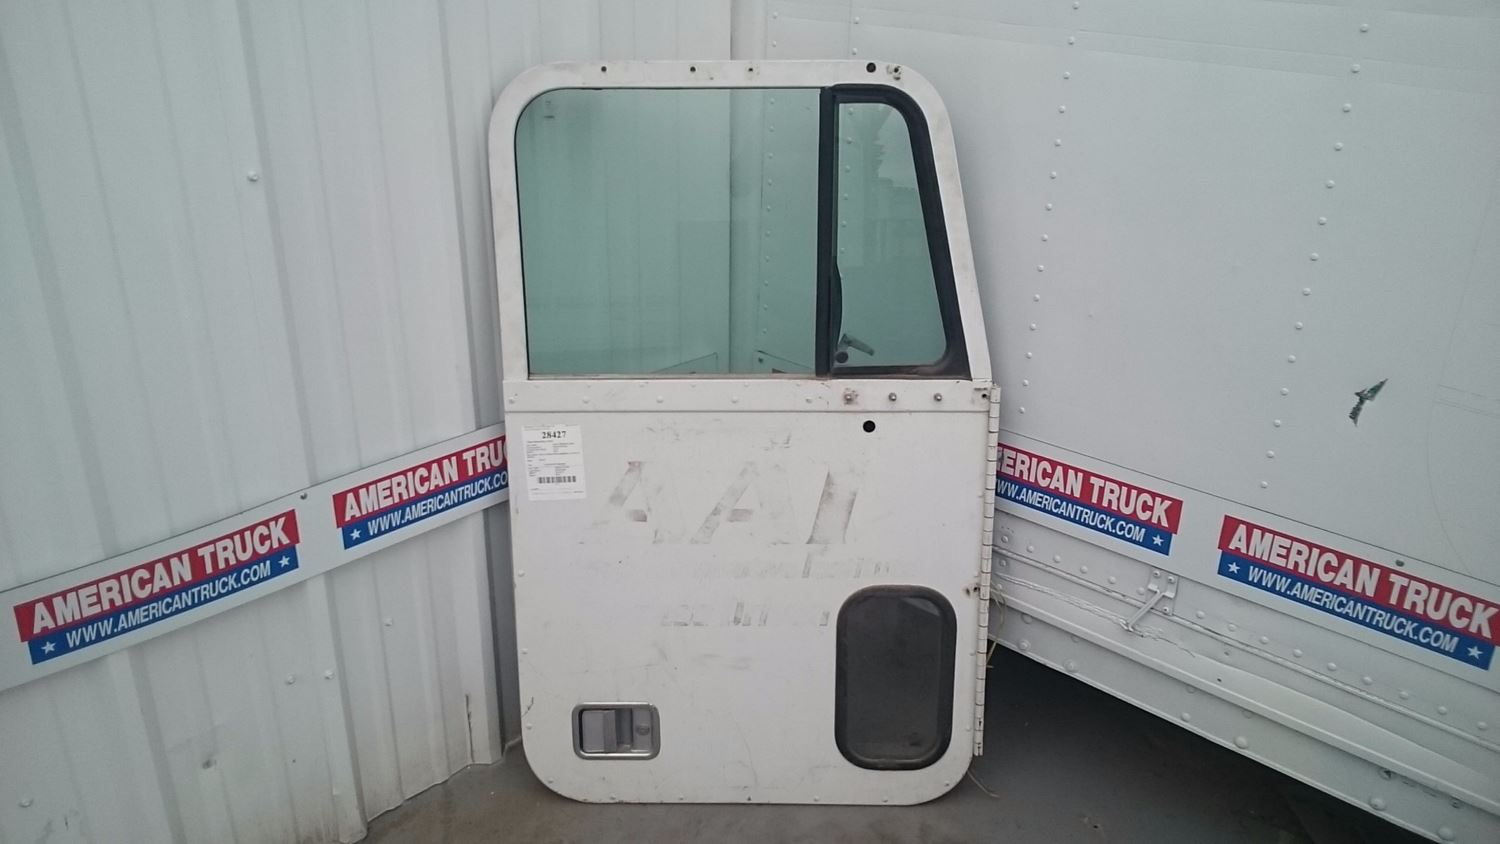 2000 Freightliner FLD120 Doors 0ZYYHmqGVF3z_f?resize\\\\\\\\\\\\\=665%2C374\\\\\\\\\\\\\&ssl\\\\\\\\\\\\\=1 grote 9130 wiring diagram grote tail light wire diagram, grote grote 9130 tail light wiring diagram at gsmportal.co